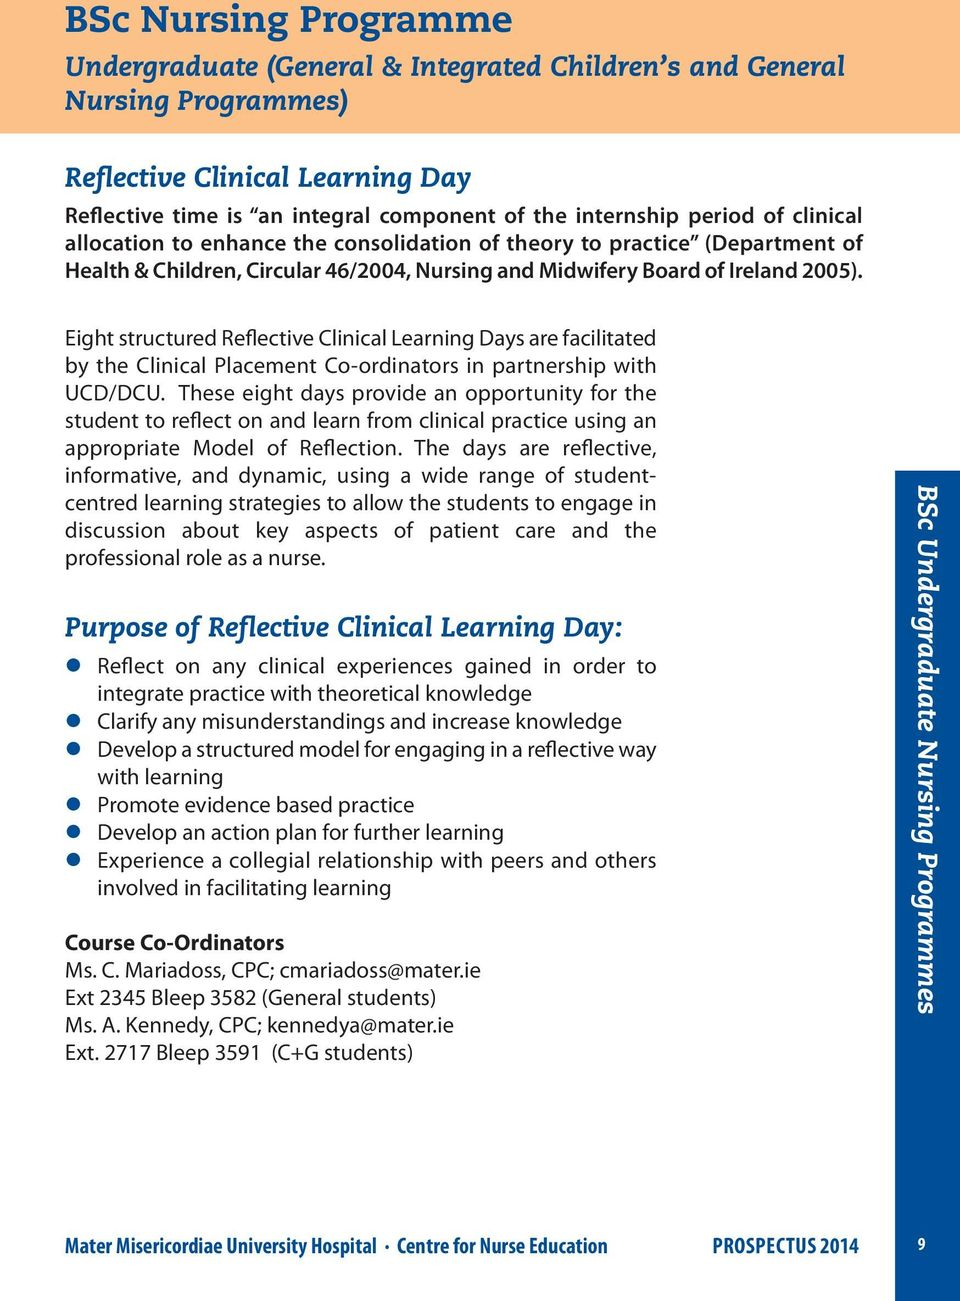 Eight structured Reflective Clinical Learning Days are facilitated by the Clinical Placement Co-ordinators in partnership with UCD/DCU.